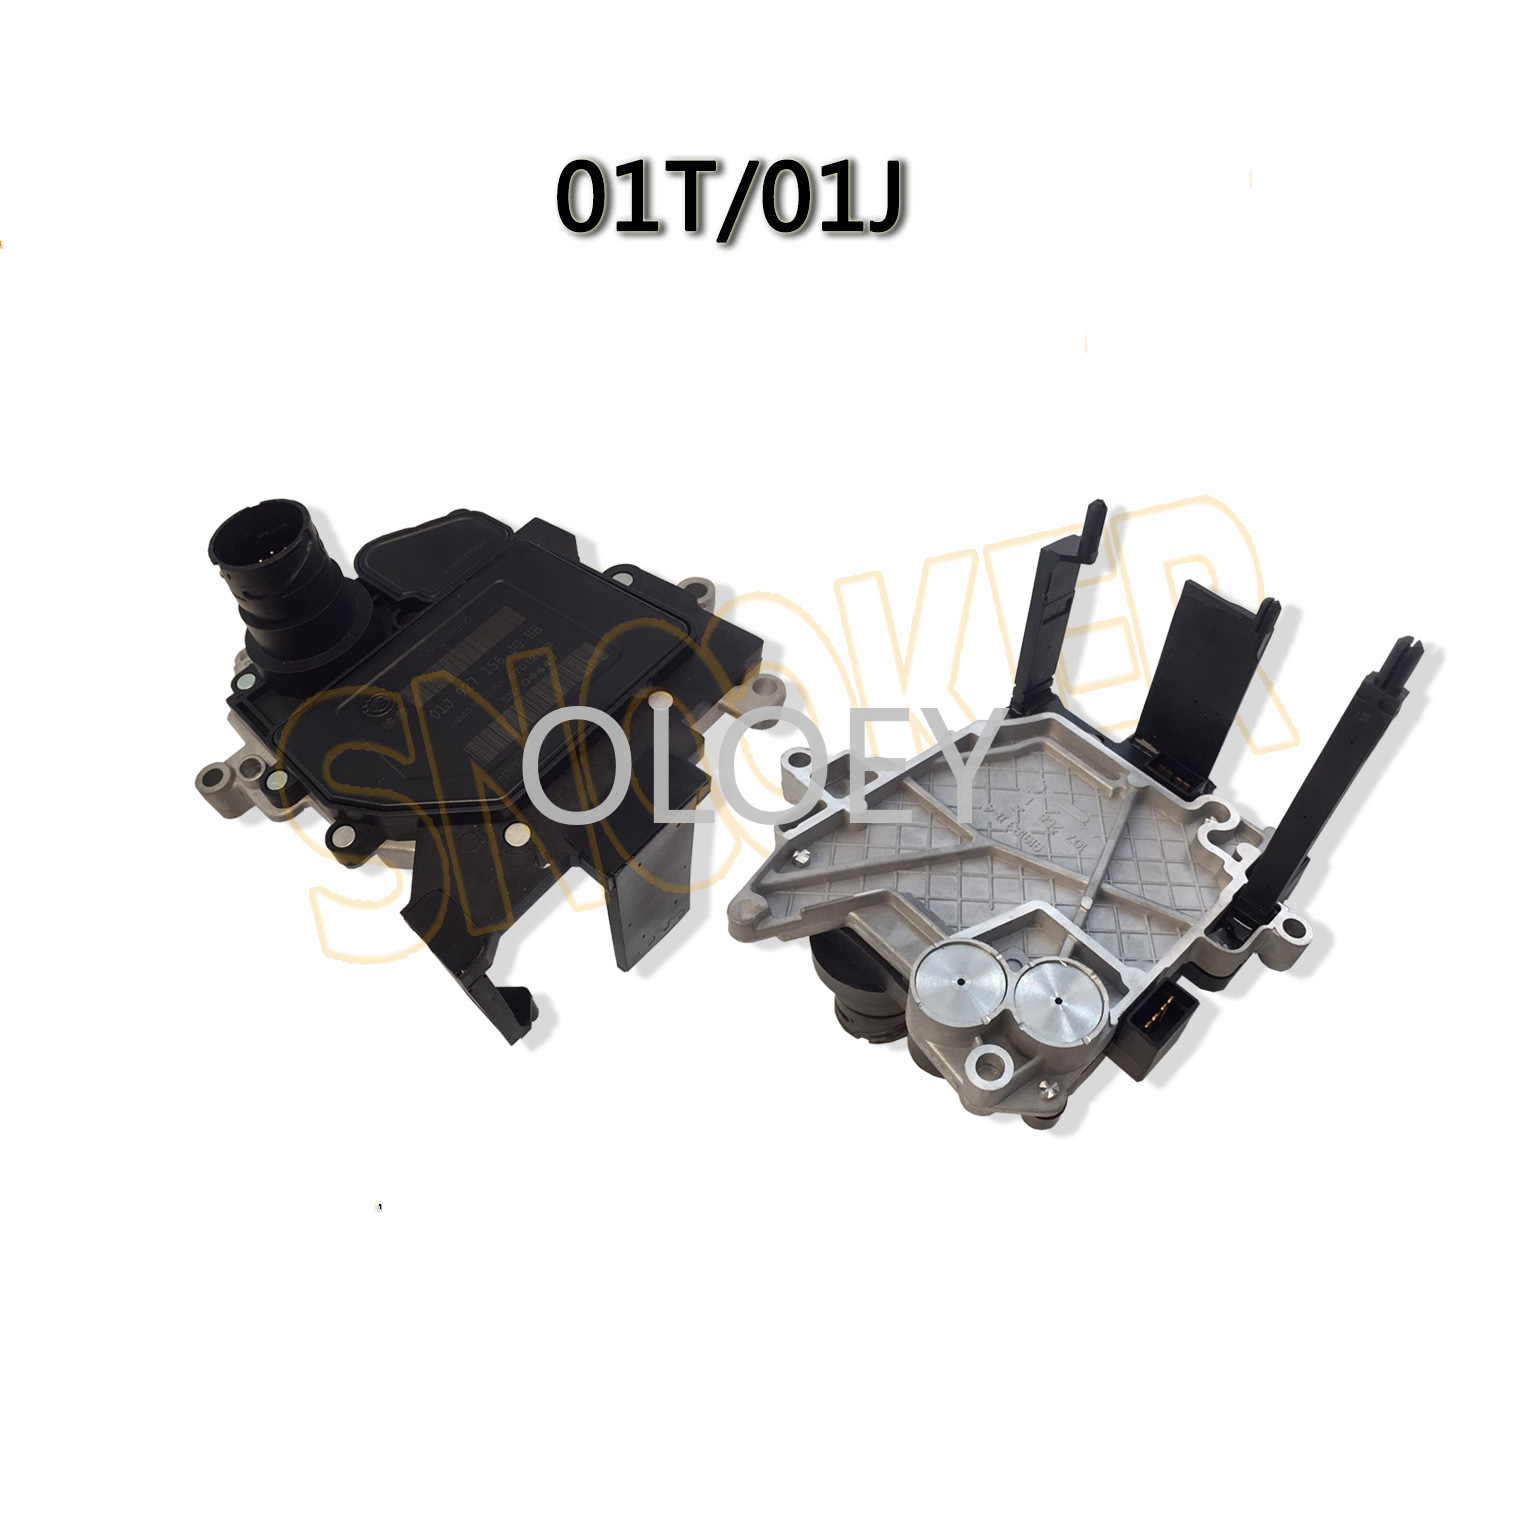 Audi CVT 01J Automatic Gearbox Front Seal